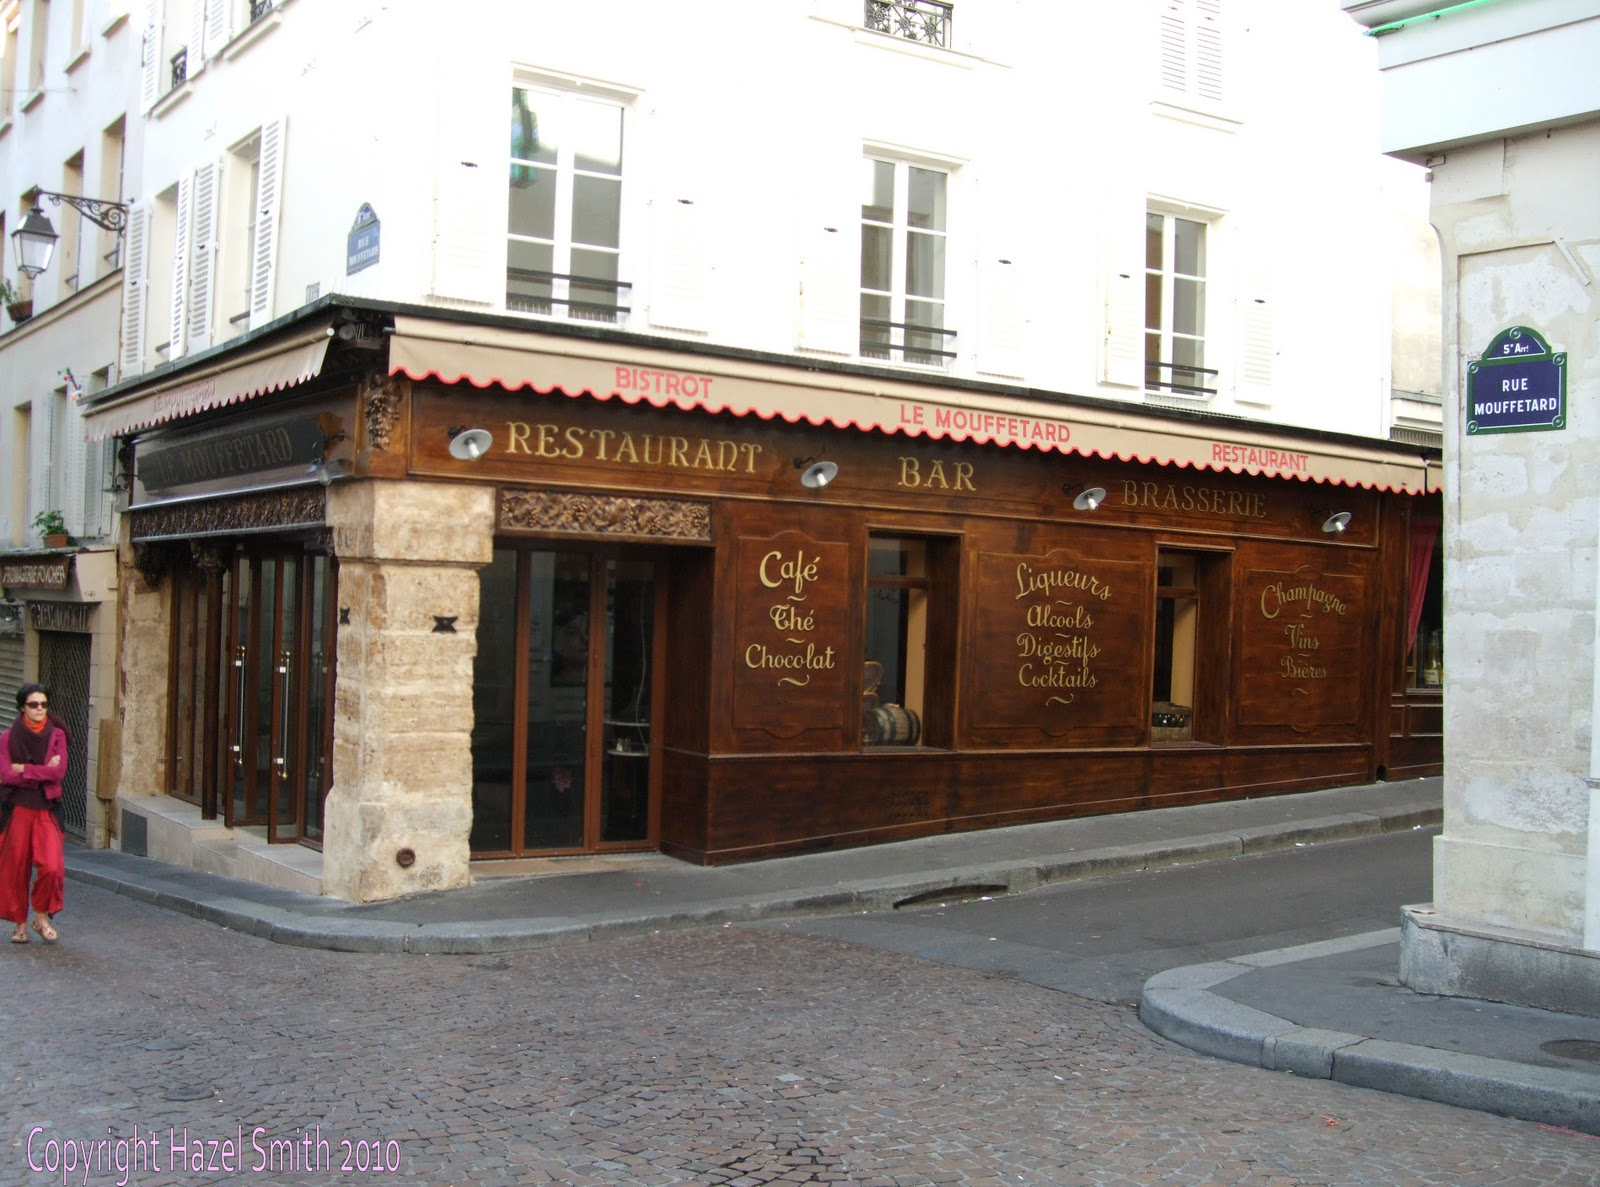 Smartypants Goes to France: Dinner on the Rue Mouffetard